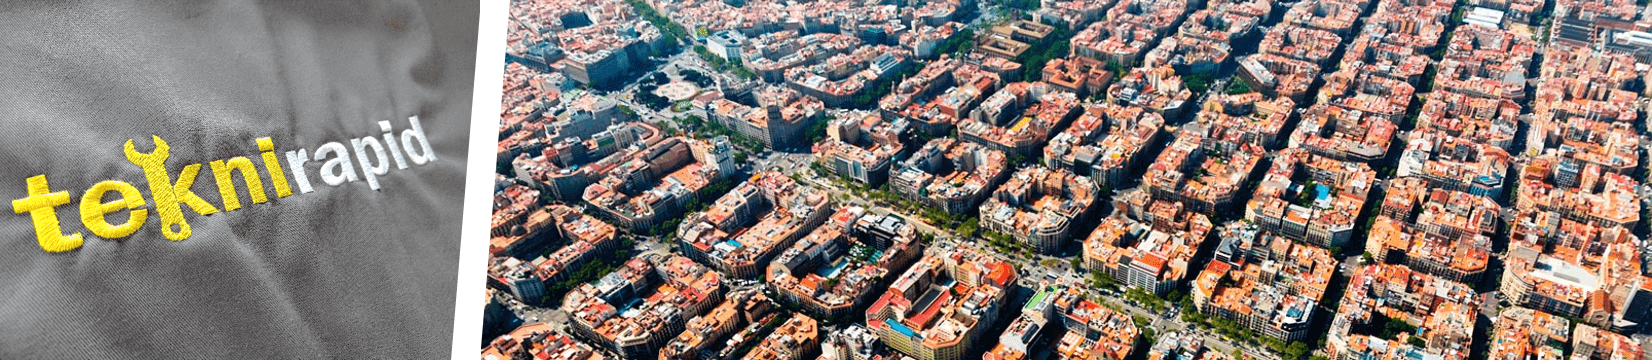 teknirapid-eixample